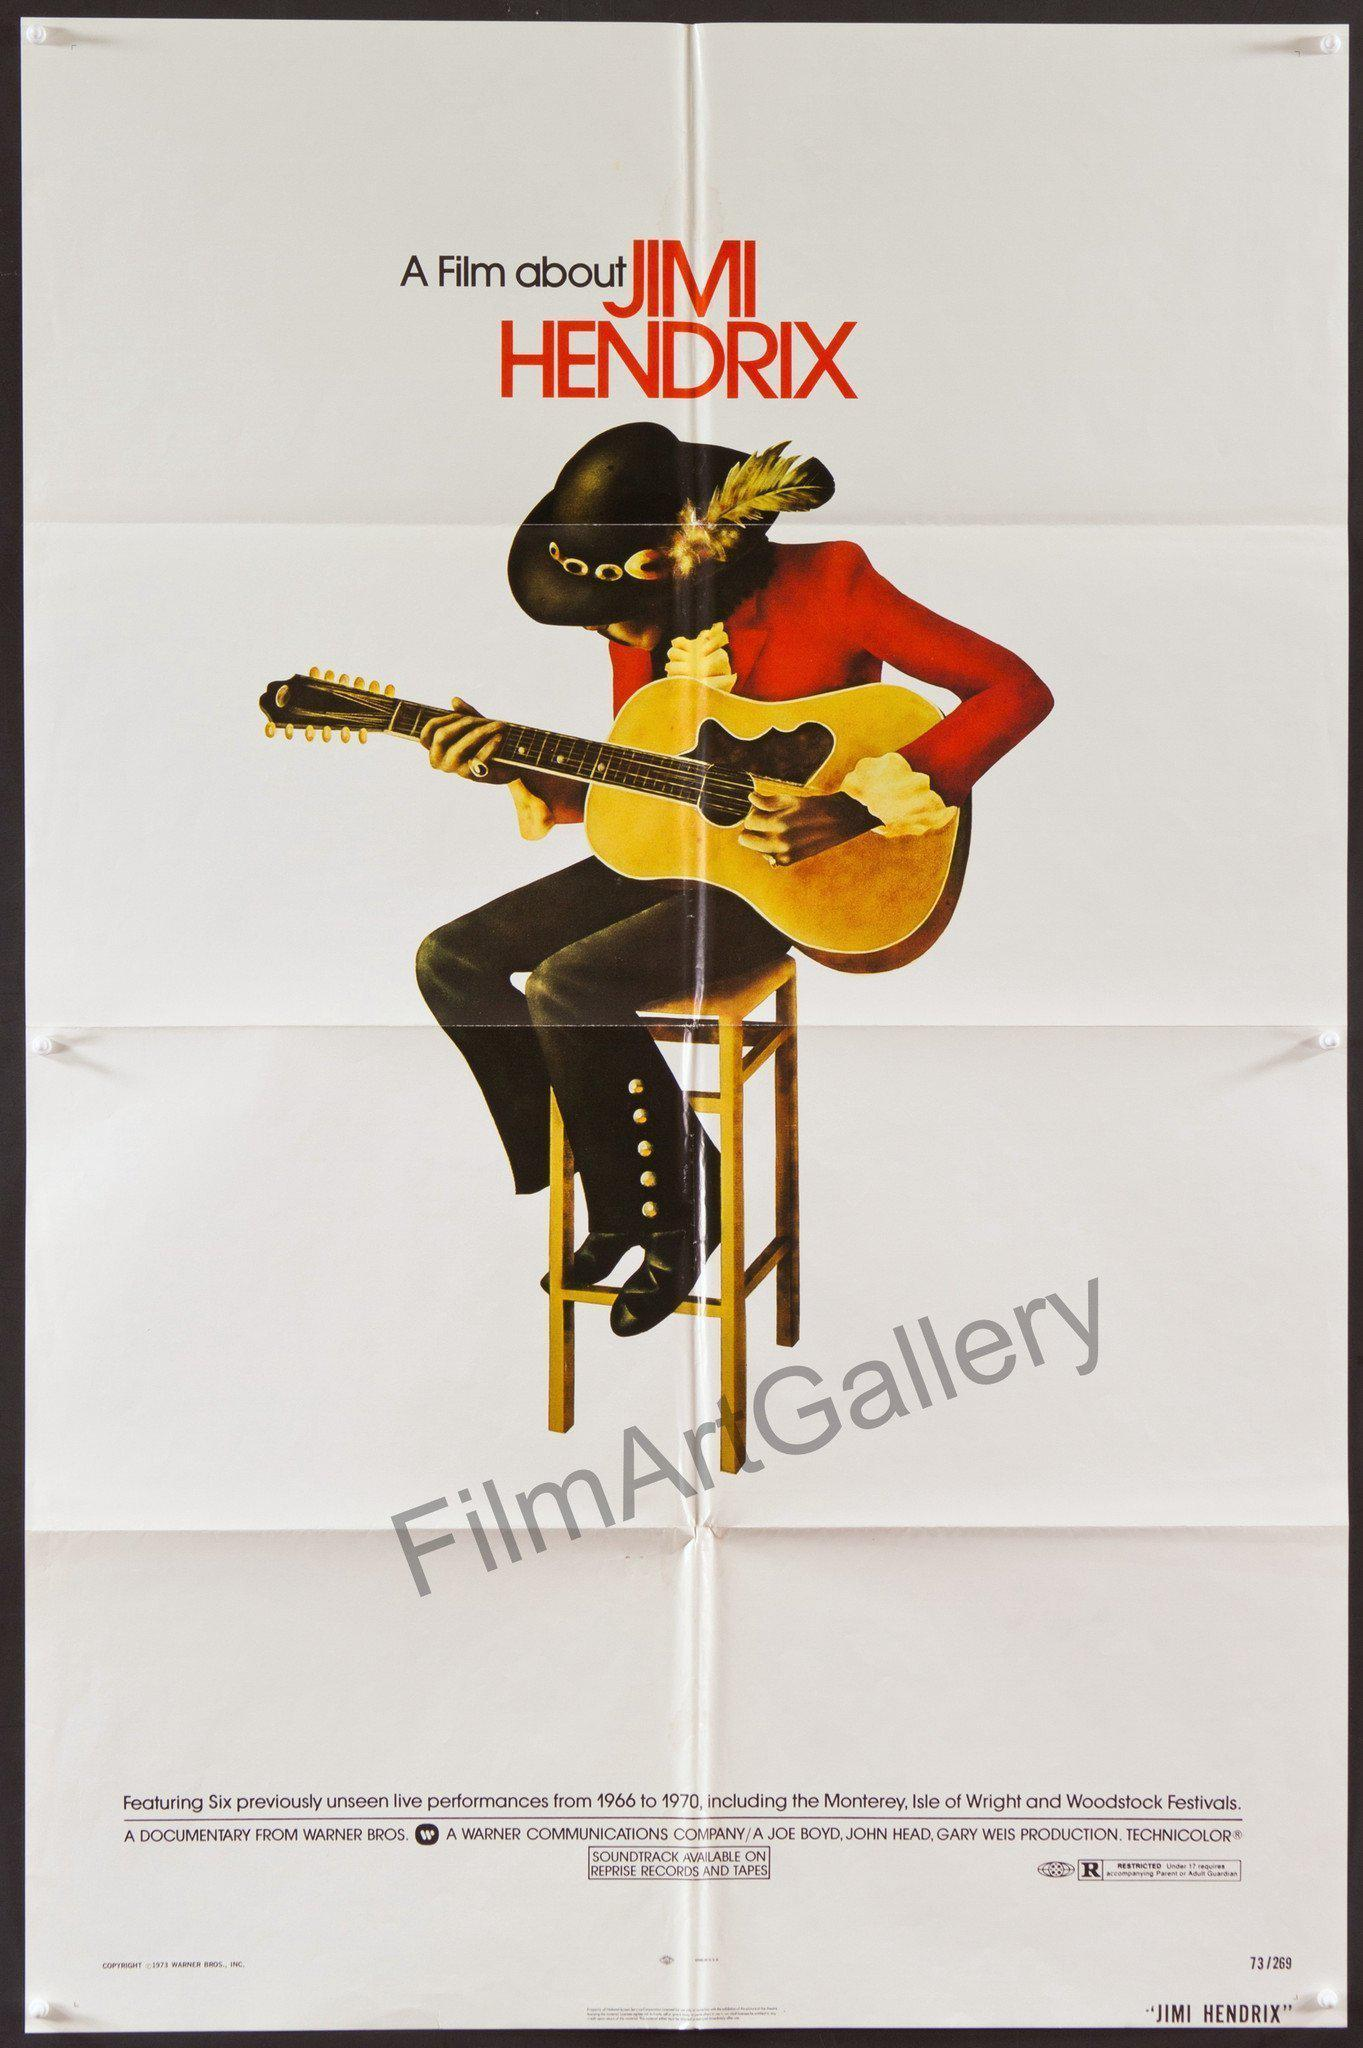 (A Film About) Jimi Hendrix 1 Sheet (27x41) Original Vintage Movie Poster